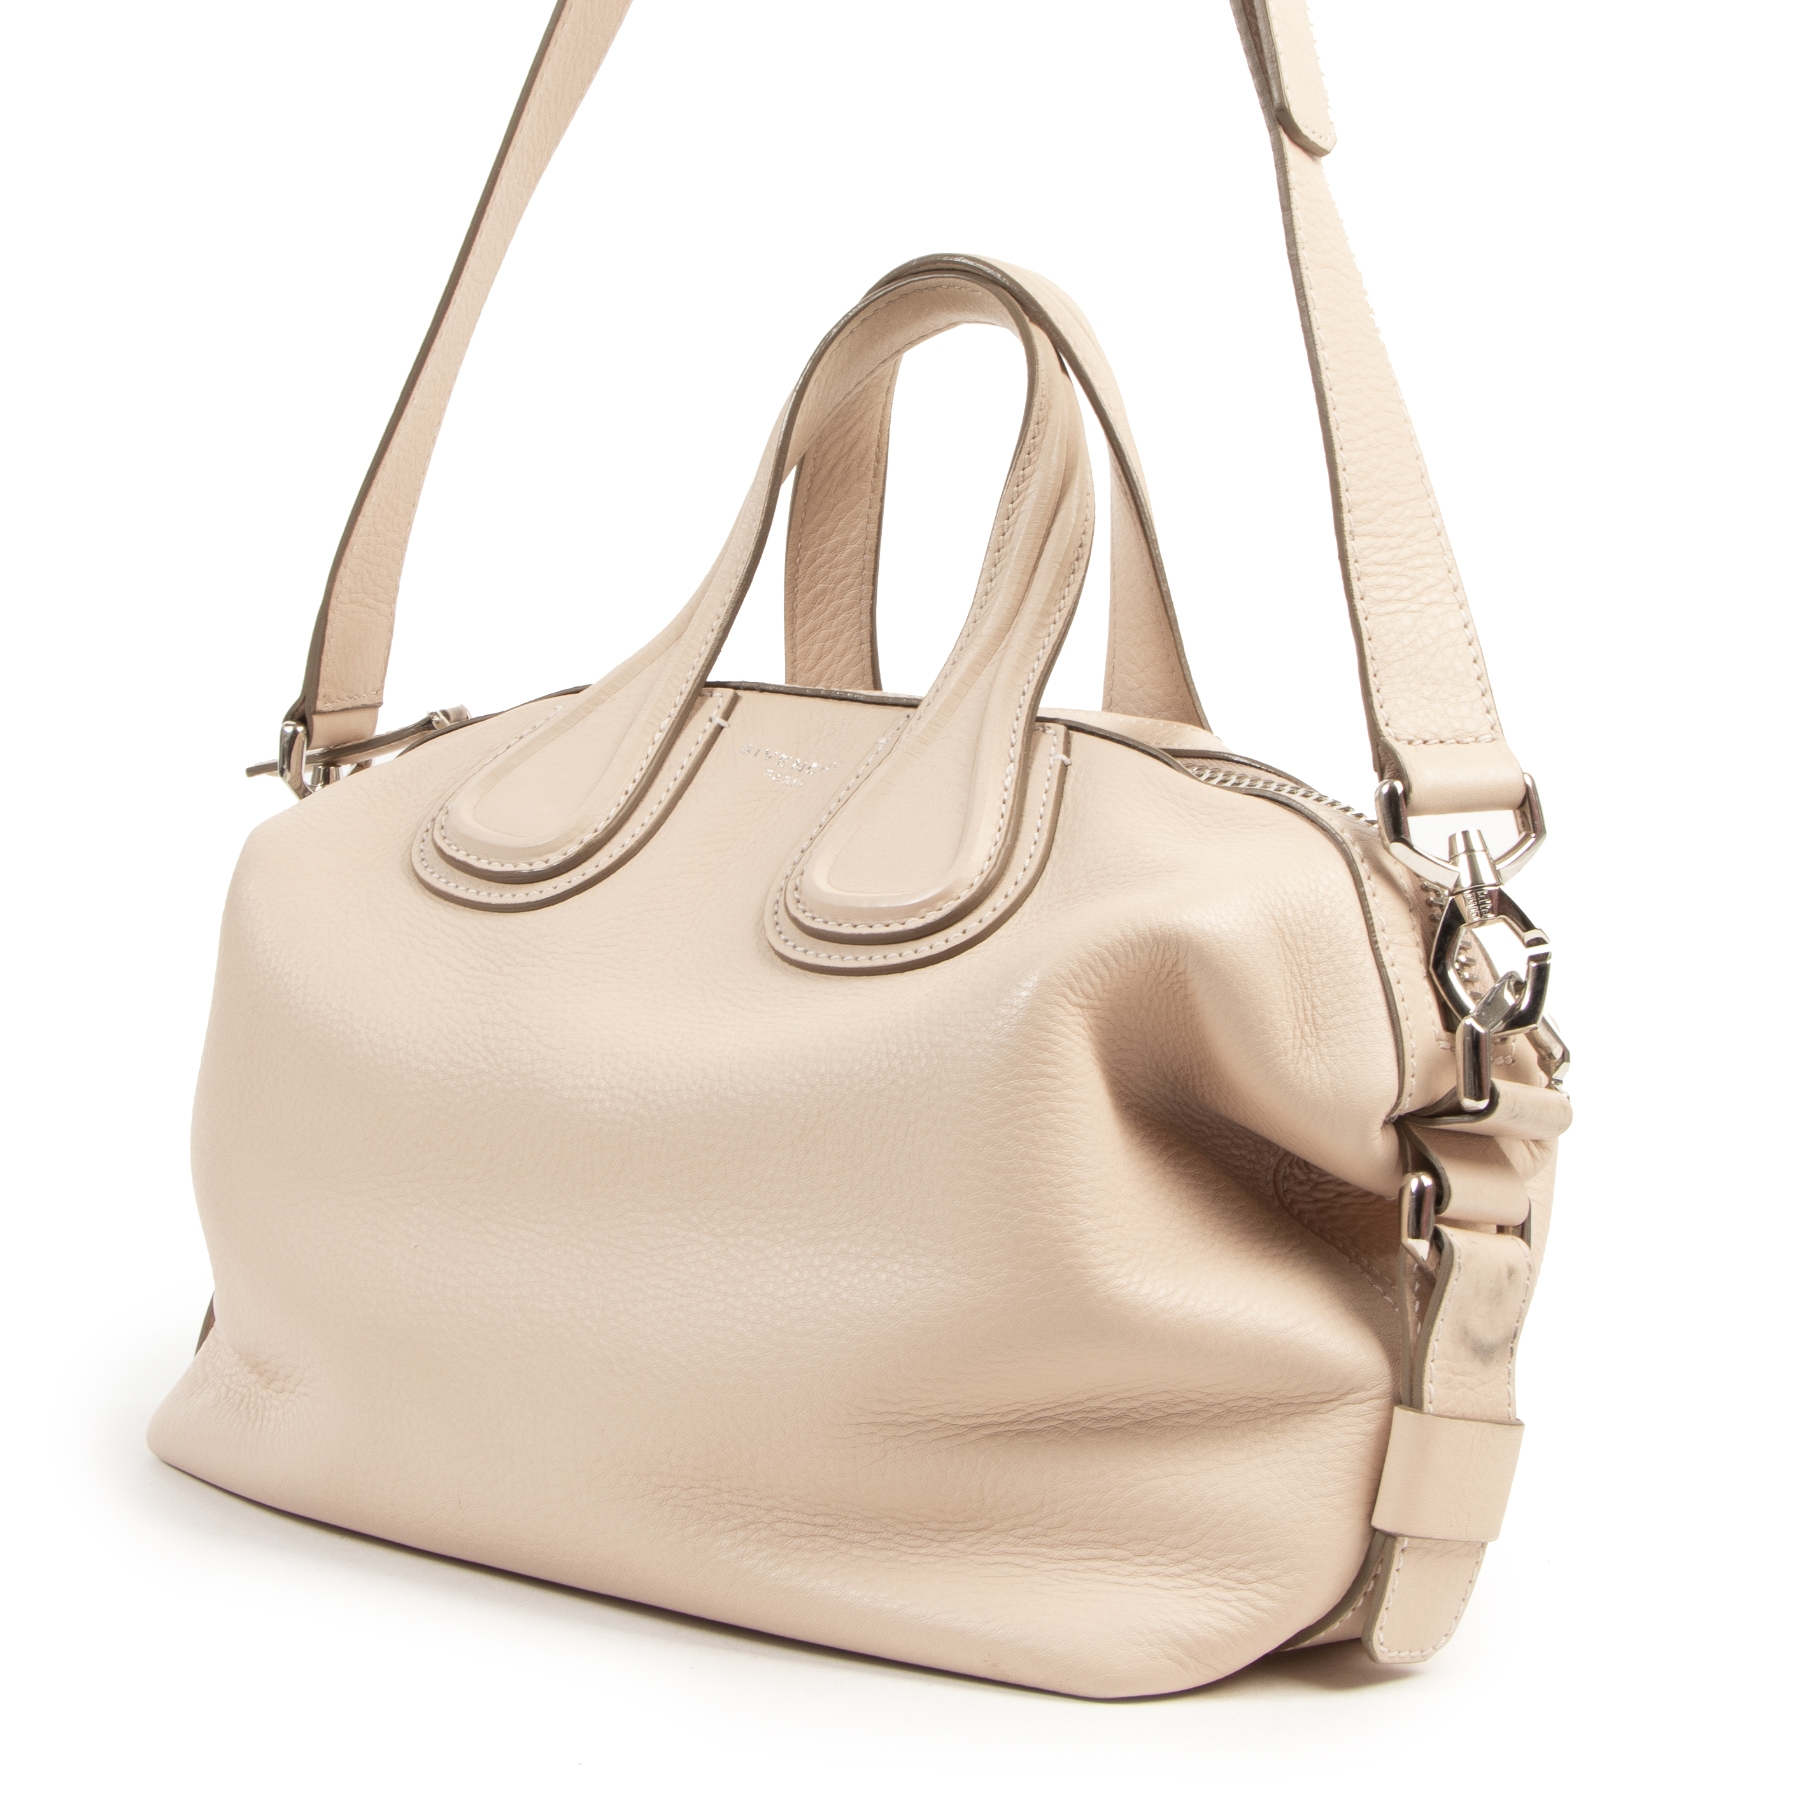 Givenchy Blush Pink Small Nightingale Tote